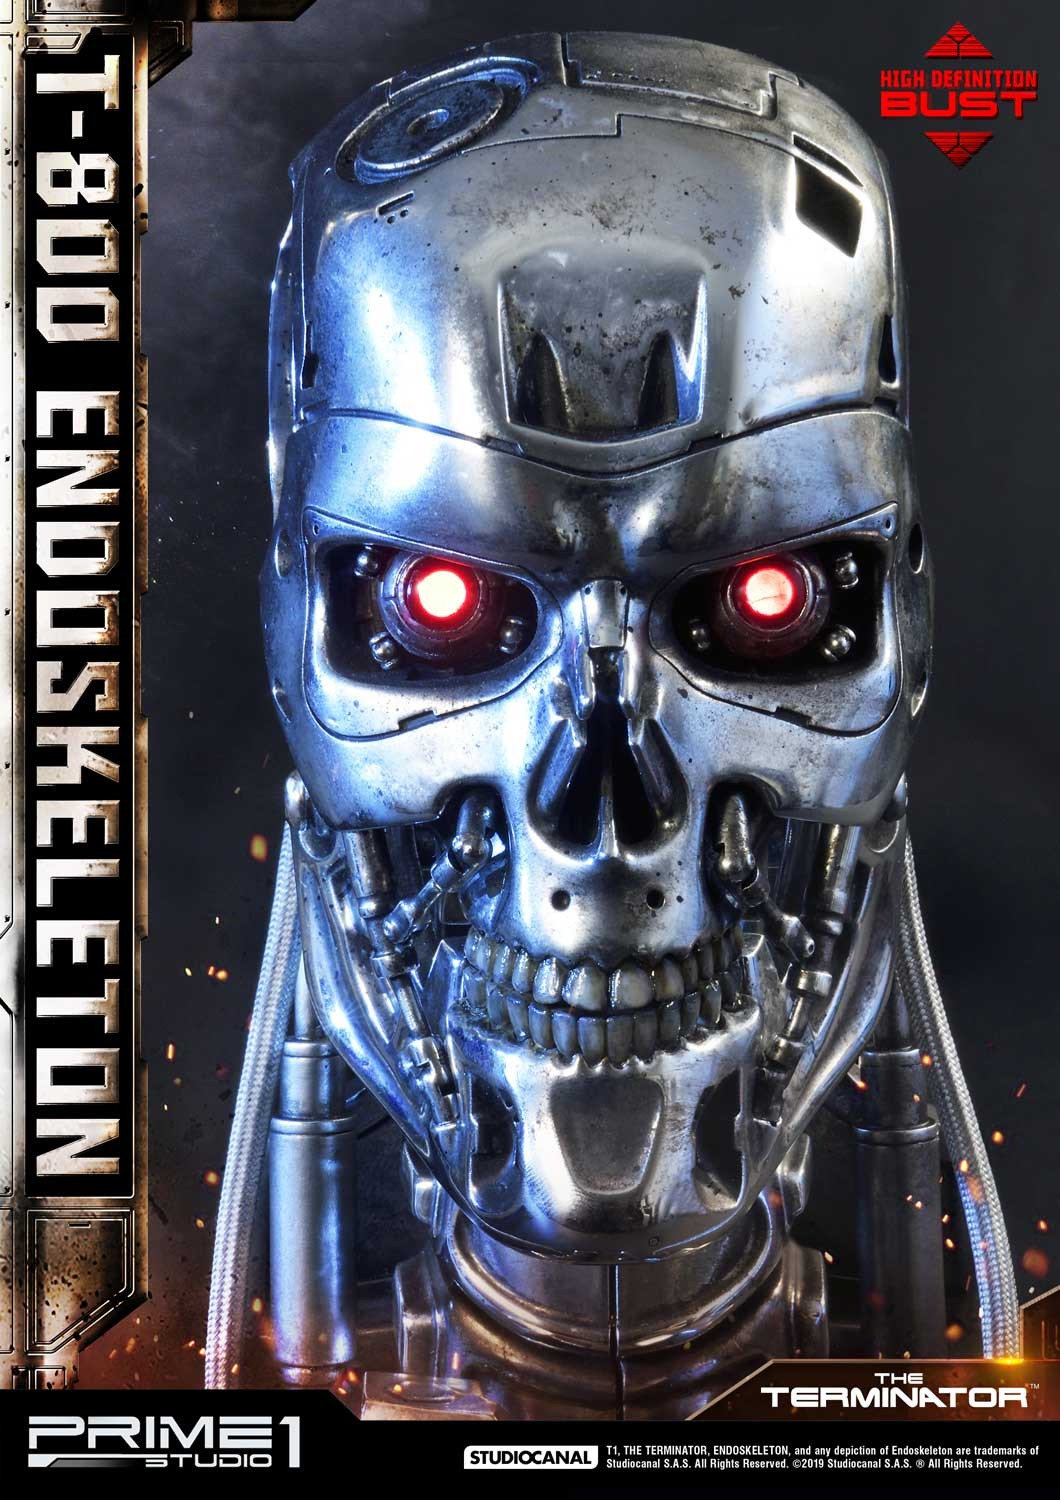 High Definition Bust The Terminator Film T 800